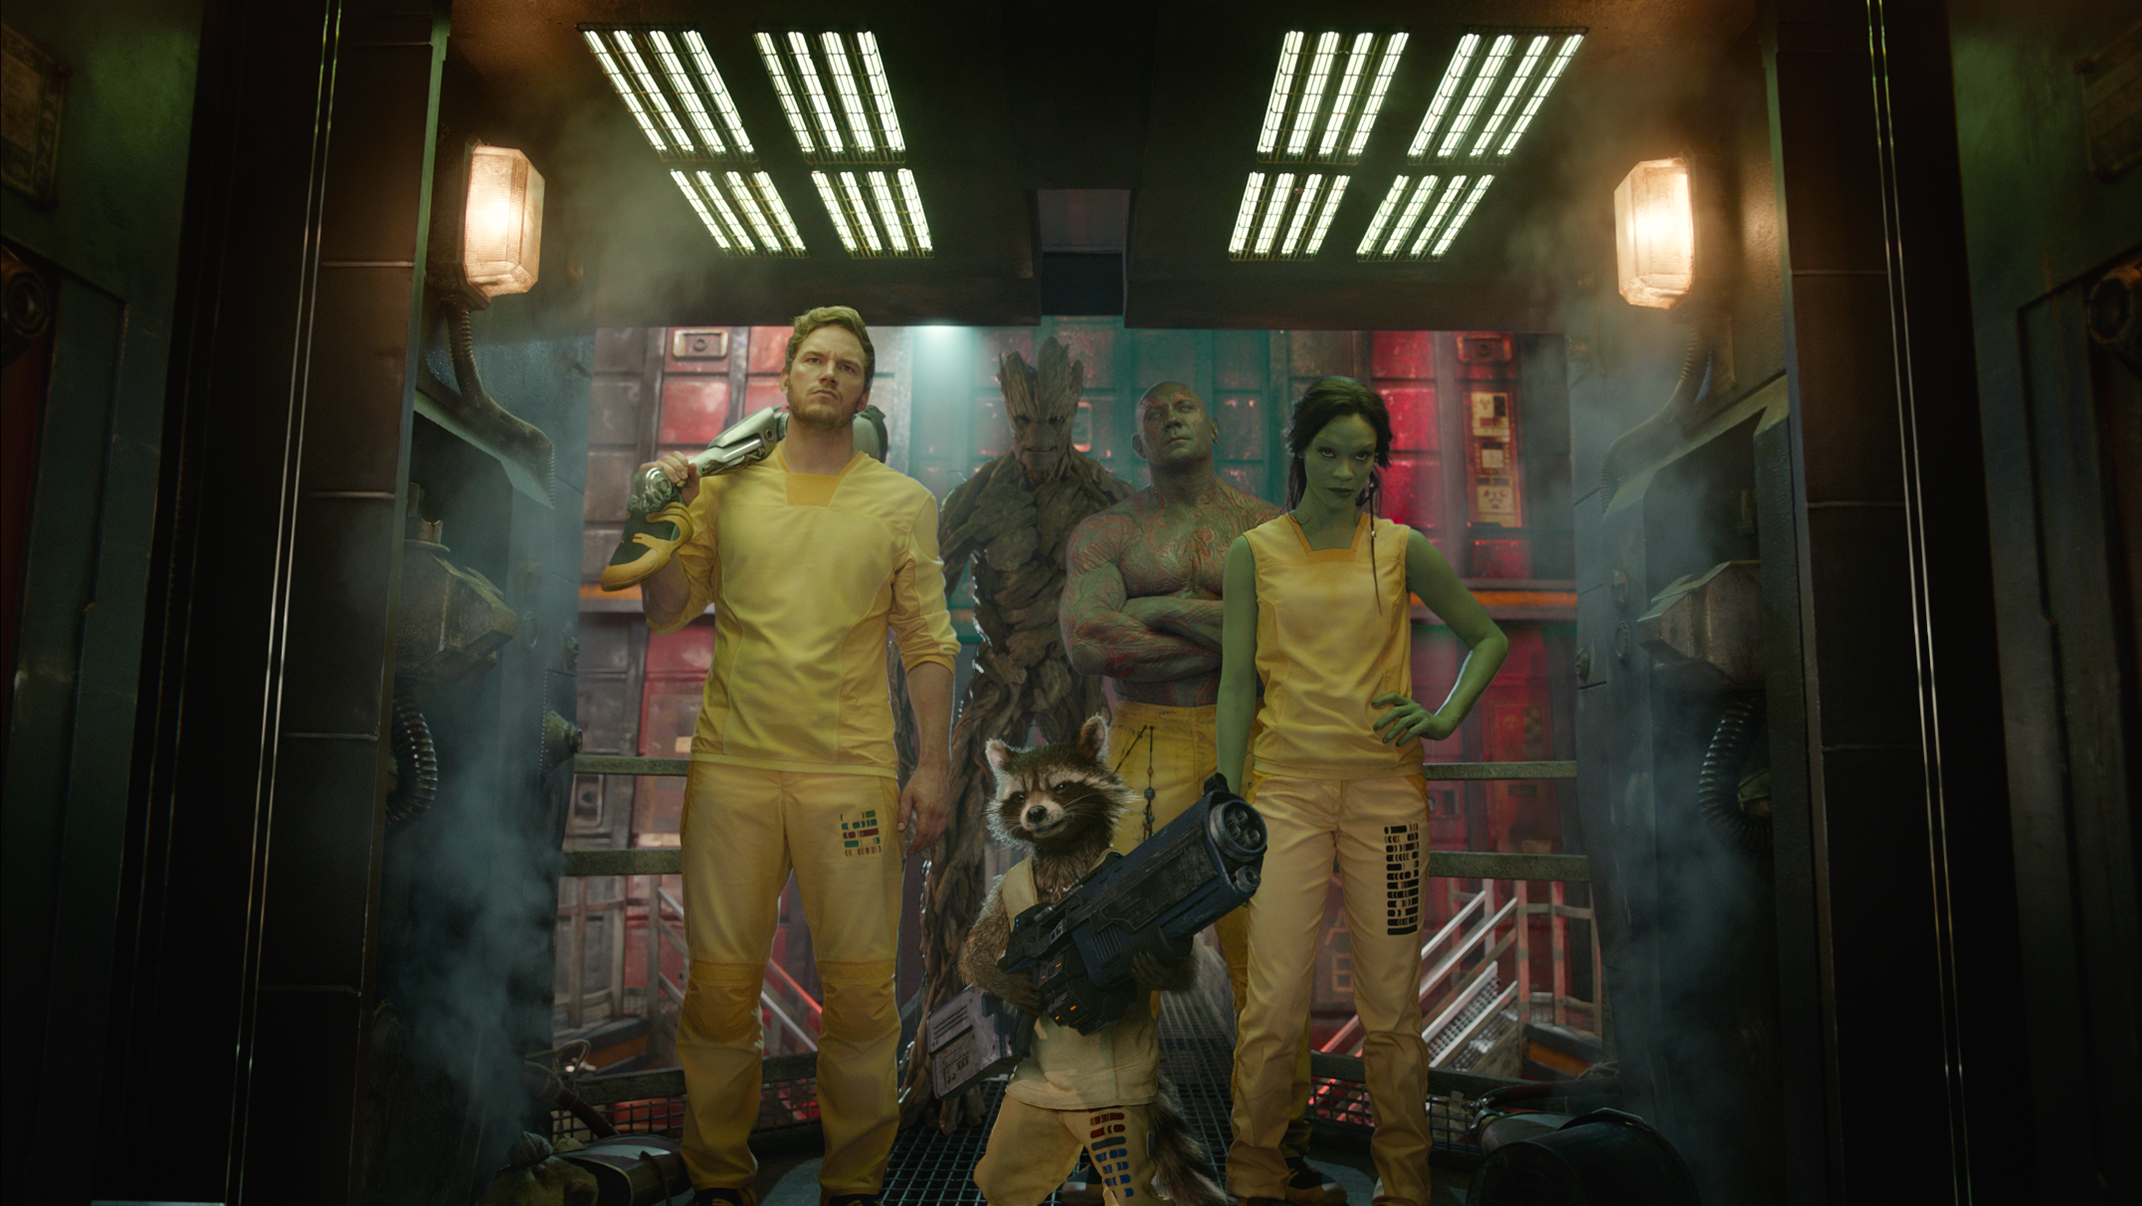 guardians-of-the-galaxy-prison.jpg